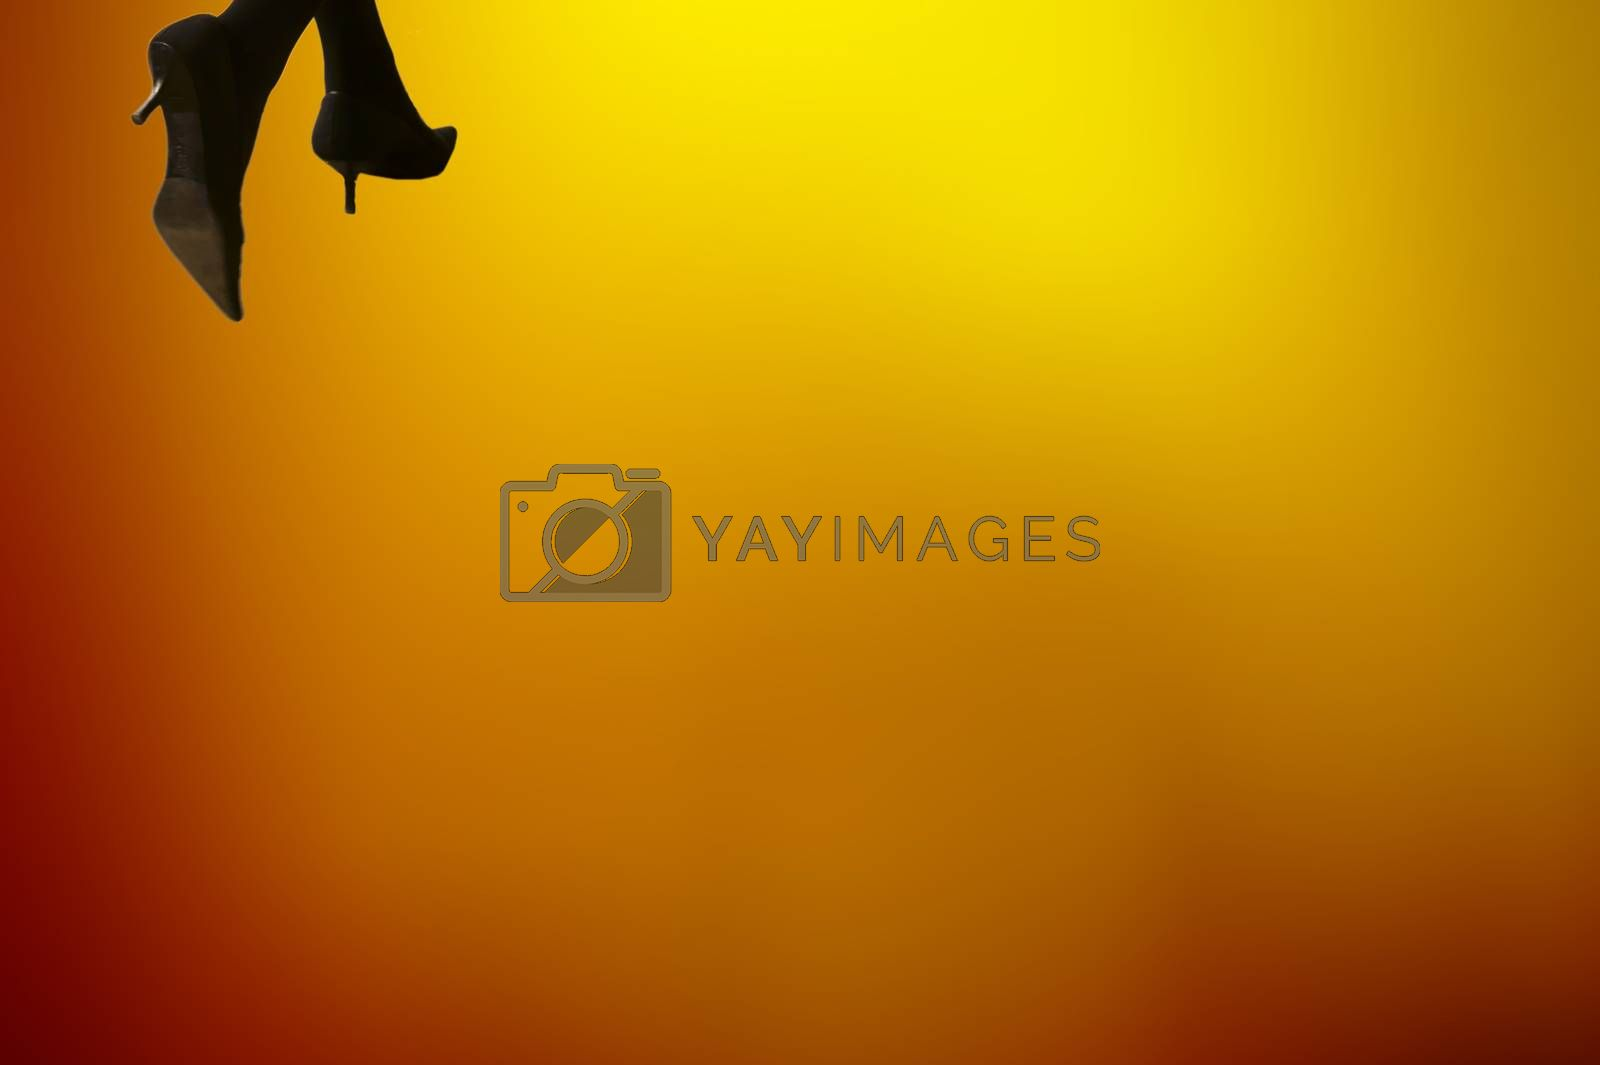 The detail of women's legs with high heels in front of a flame-colored background.